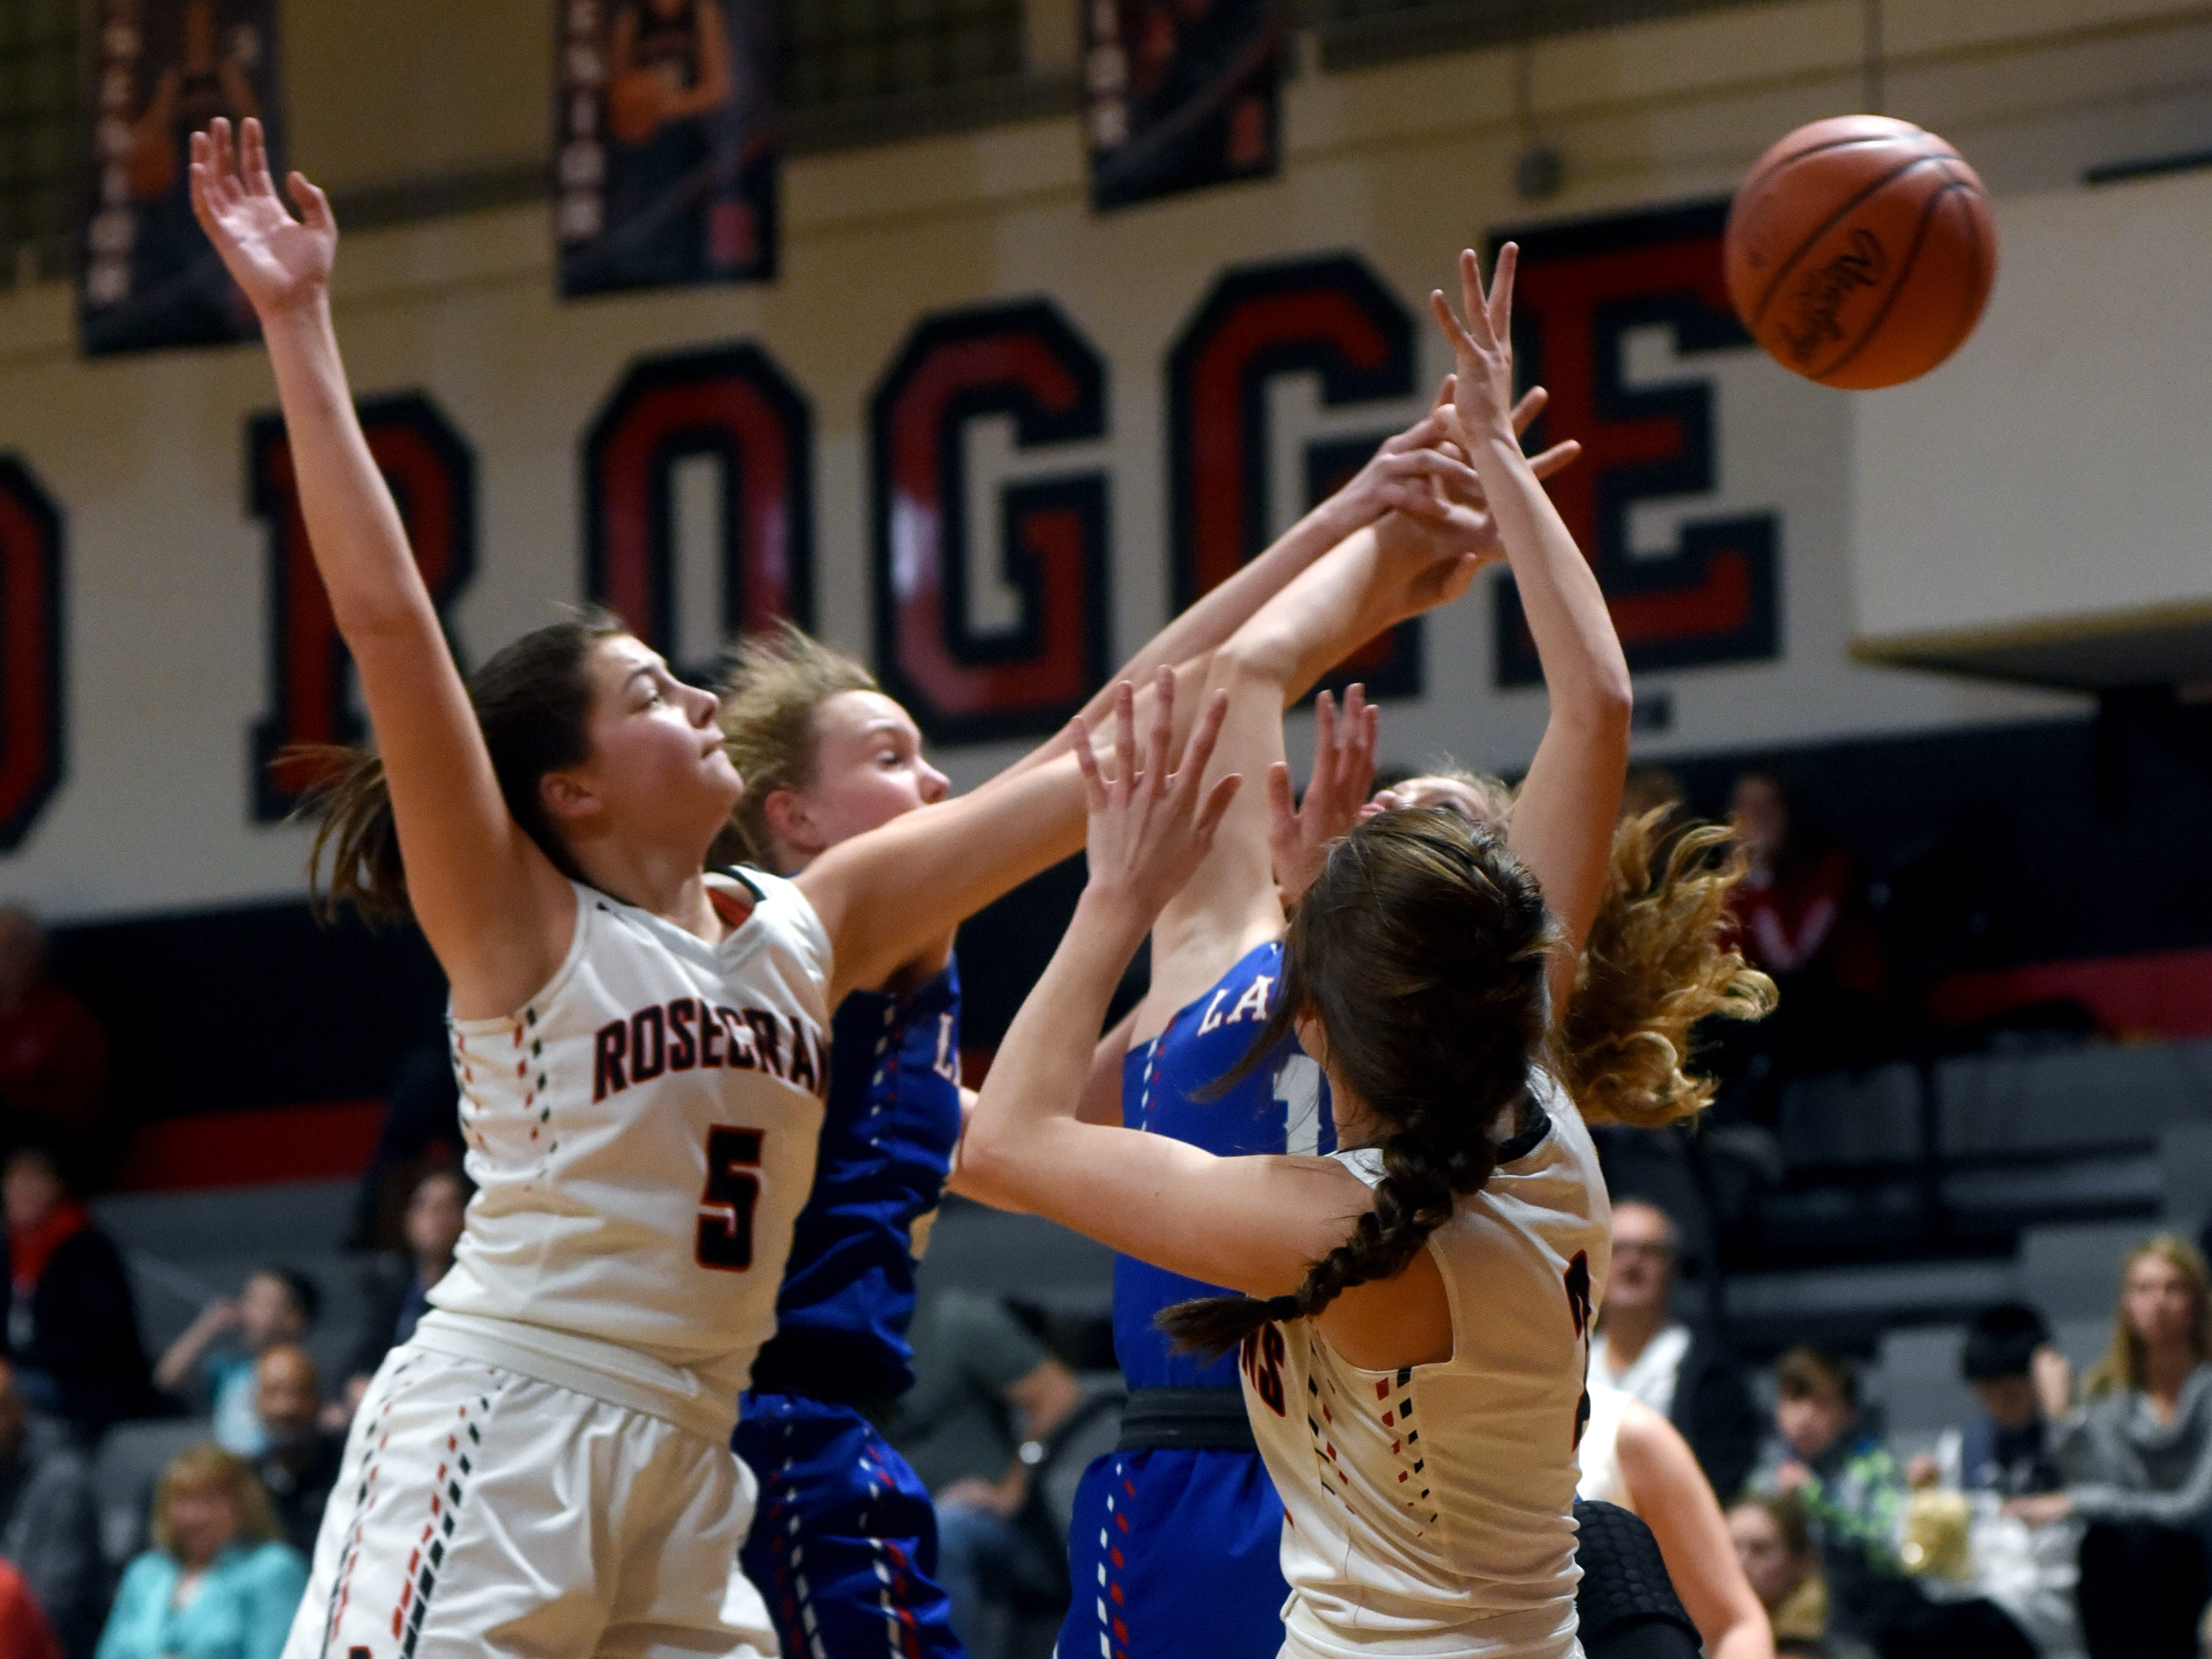 Rosecrans' Maggie Hutcheson, left, fights for a rebound against Lakewood on Monday night at Rogge Gymnasium.